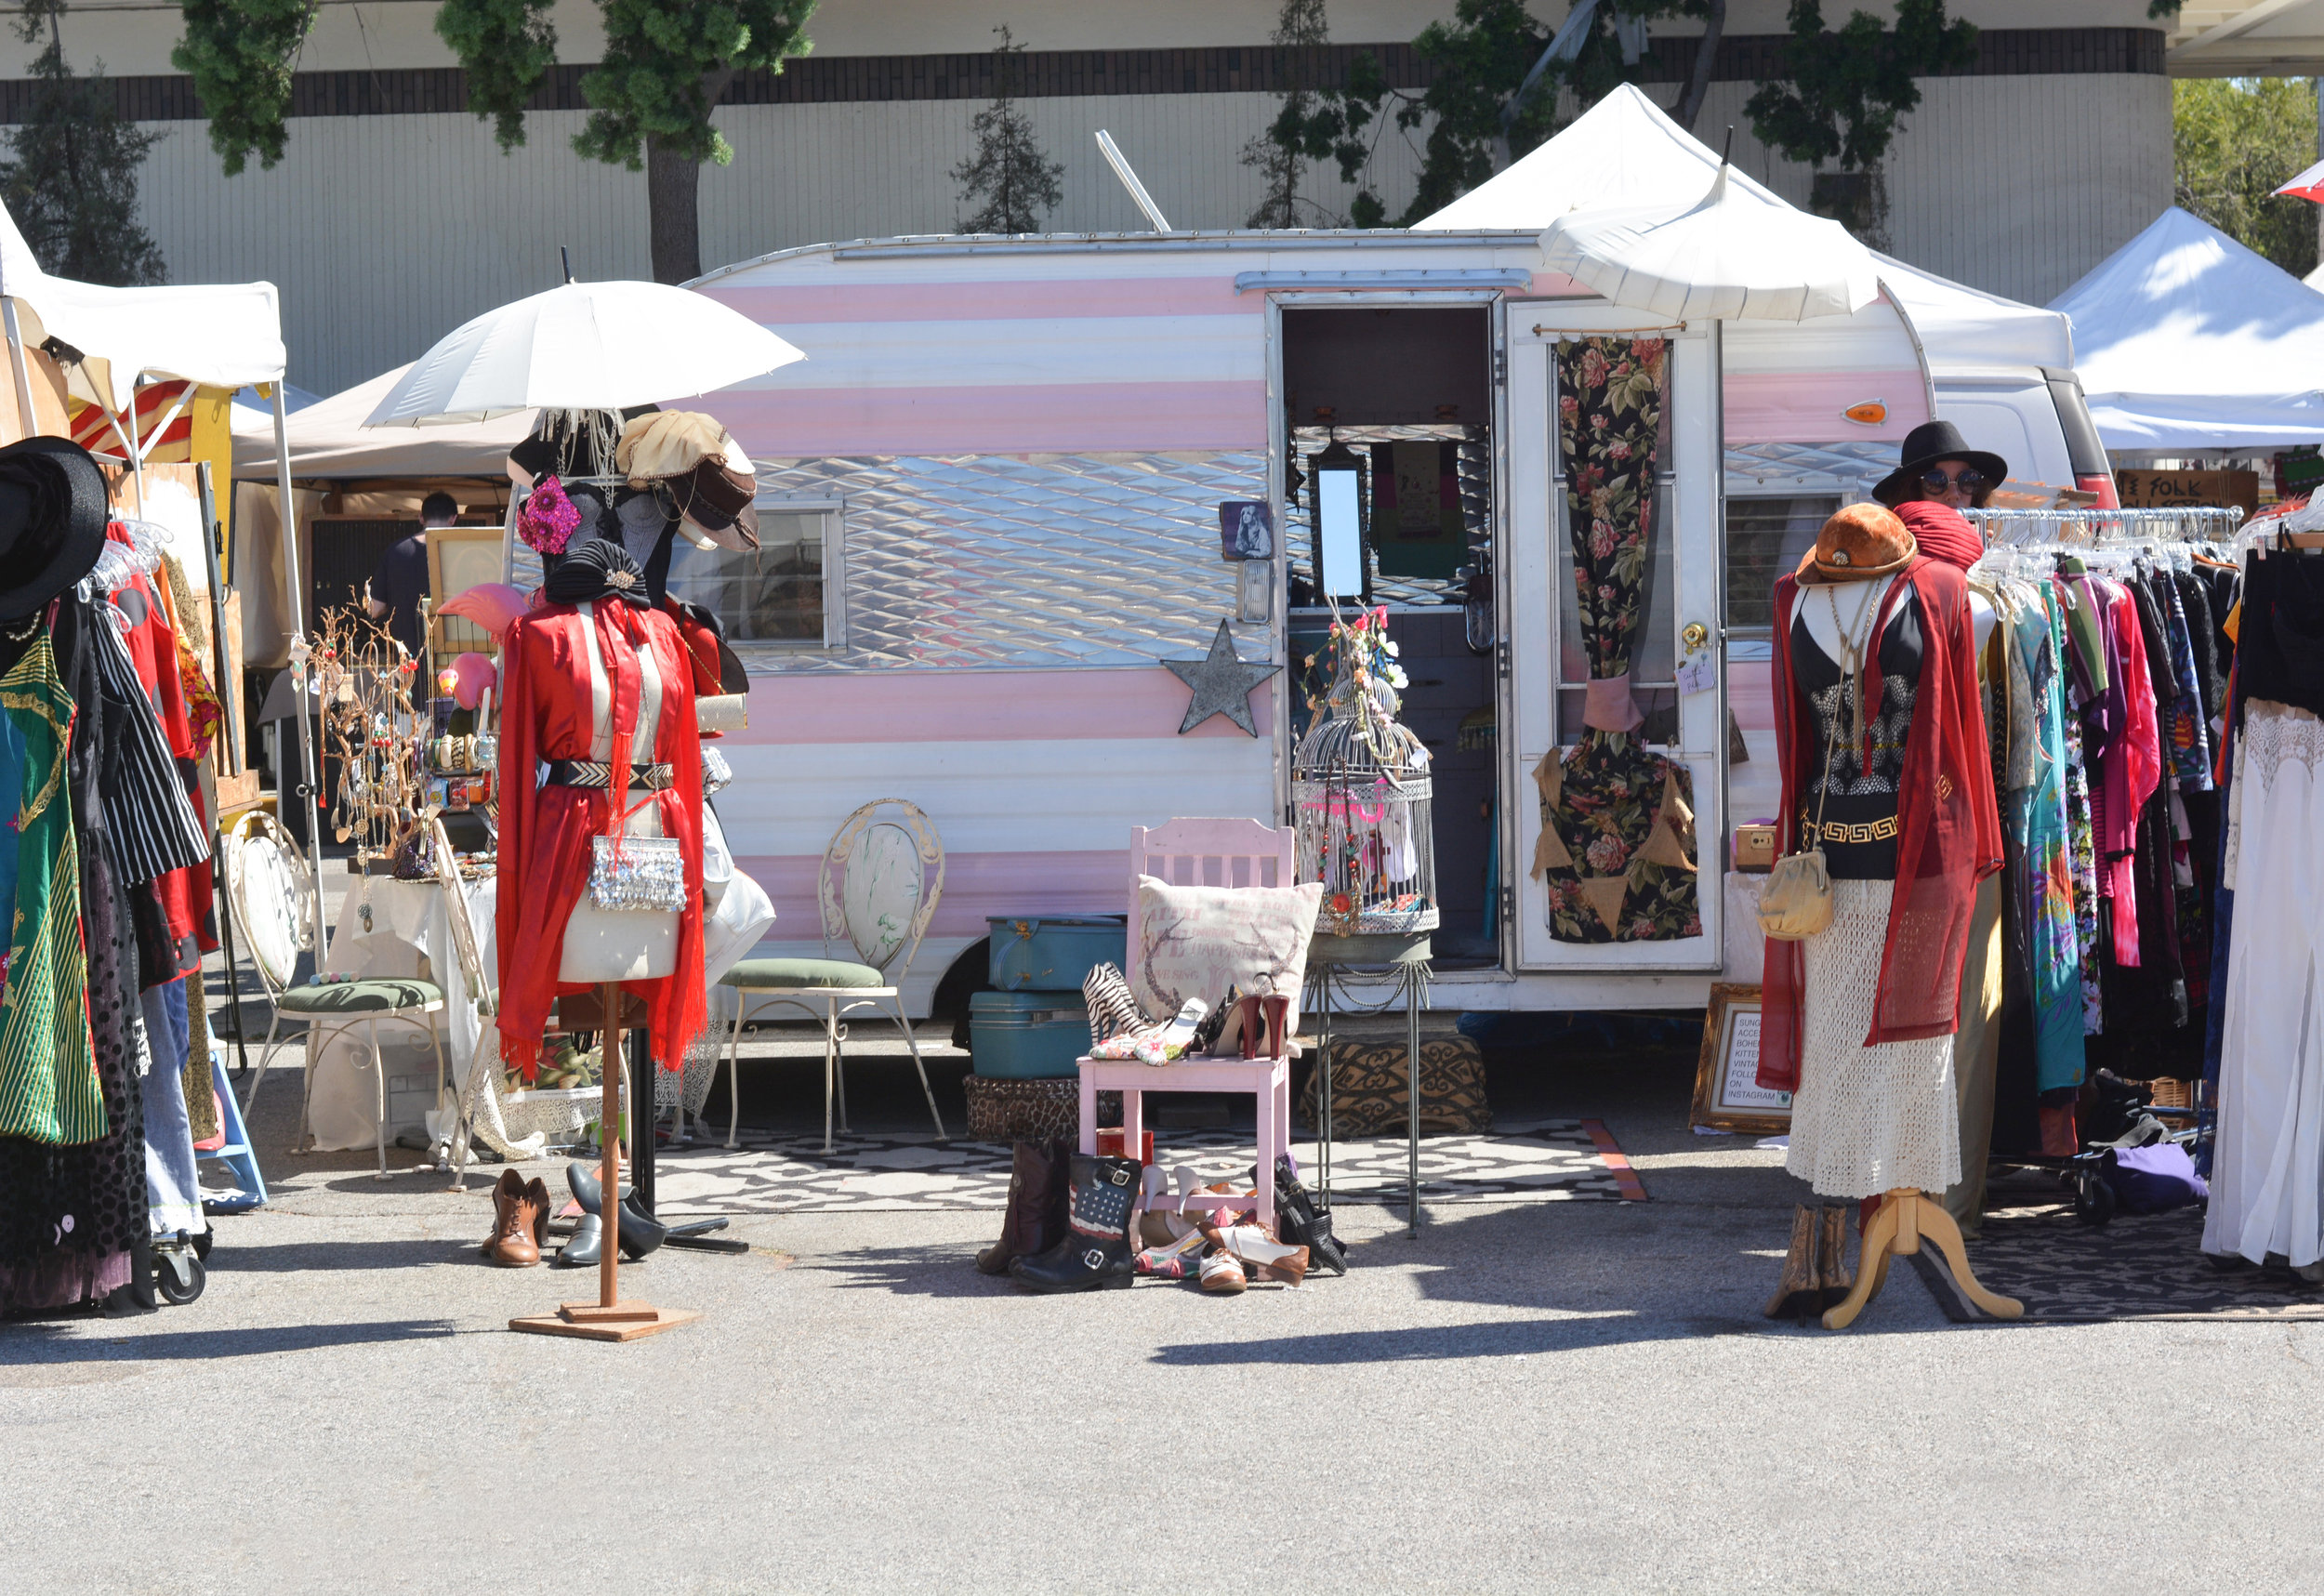 The finds at the flea market can range from vintage items to new and trendy designs.